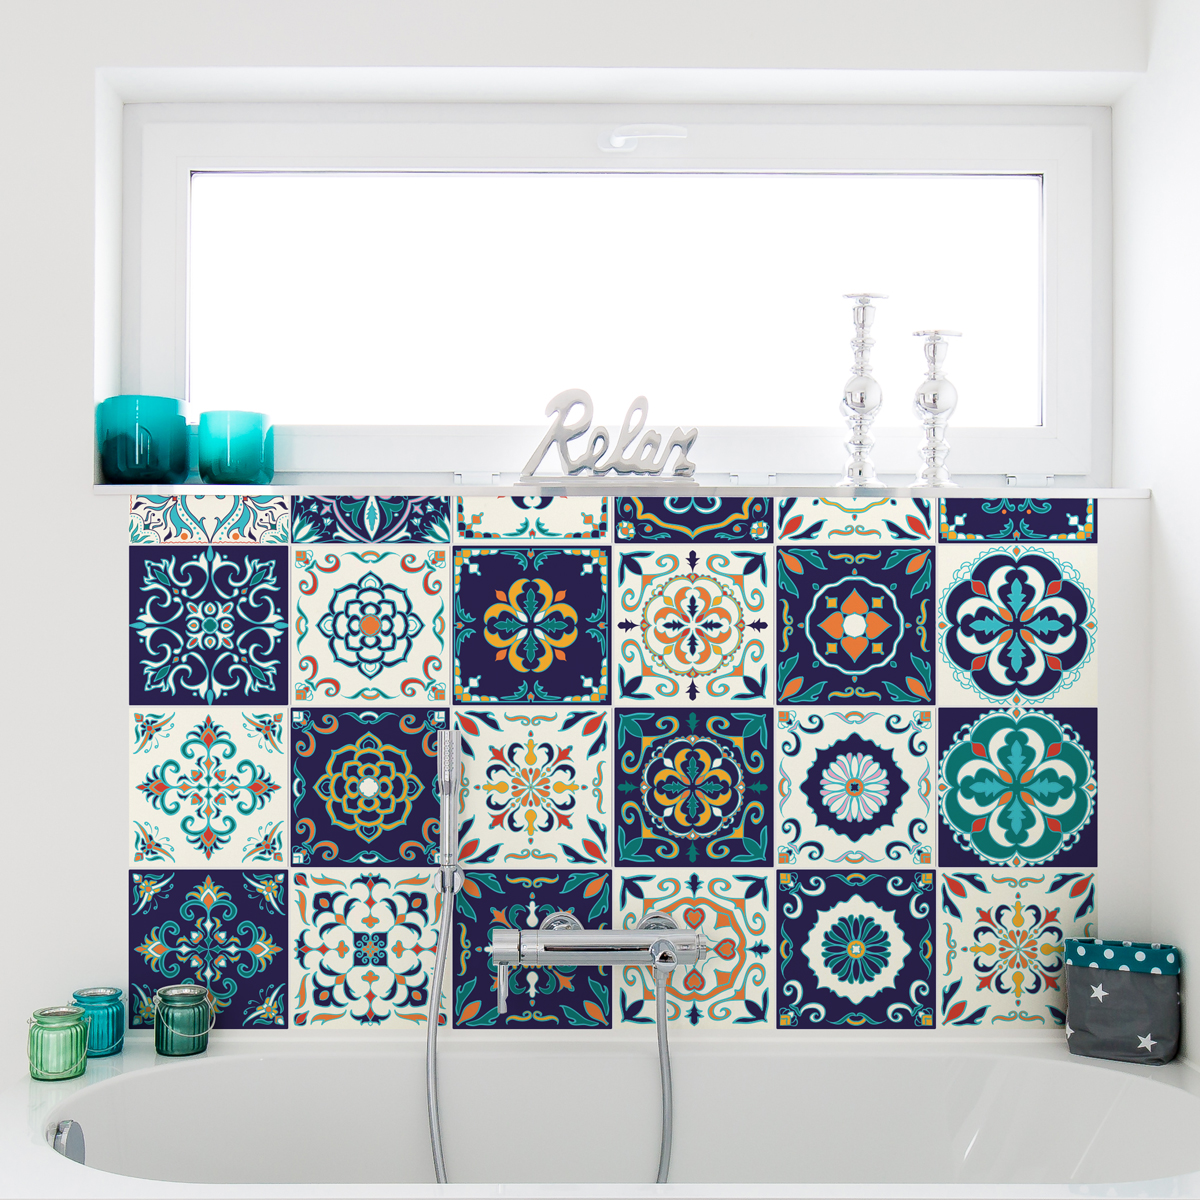 30 stickers carrelages azulejos forl cuisine carrelages ambiance sticker. Black Bedroom Furniture Sets. Home Design Ideas